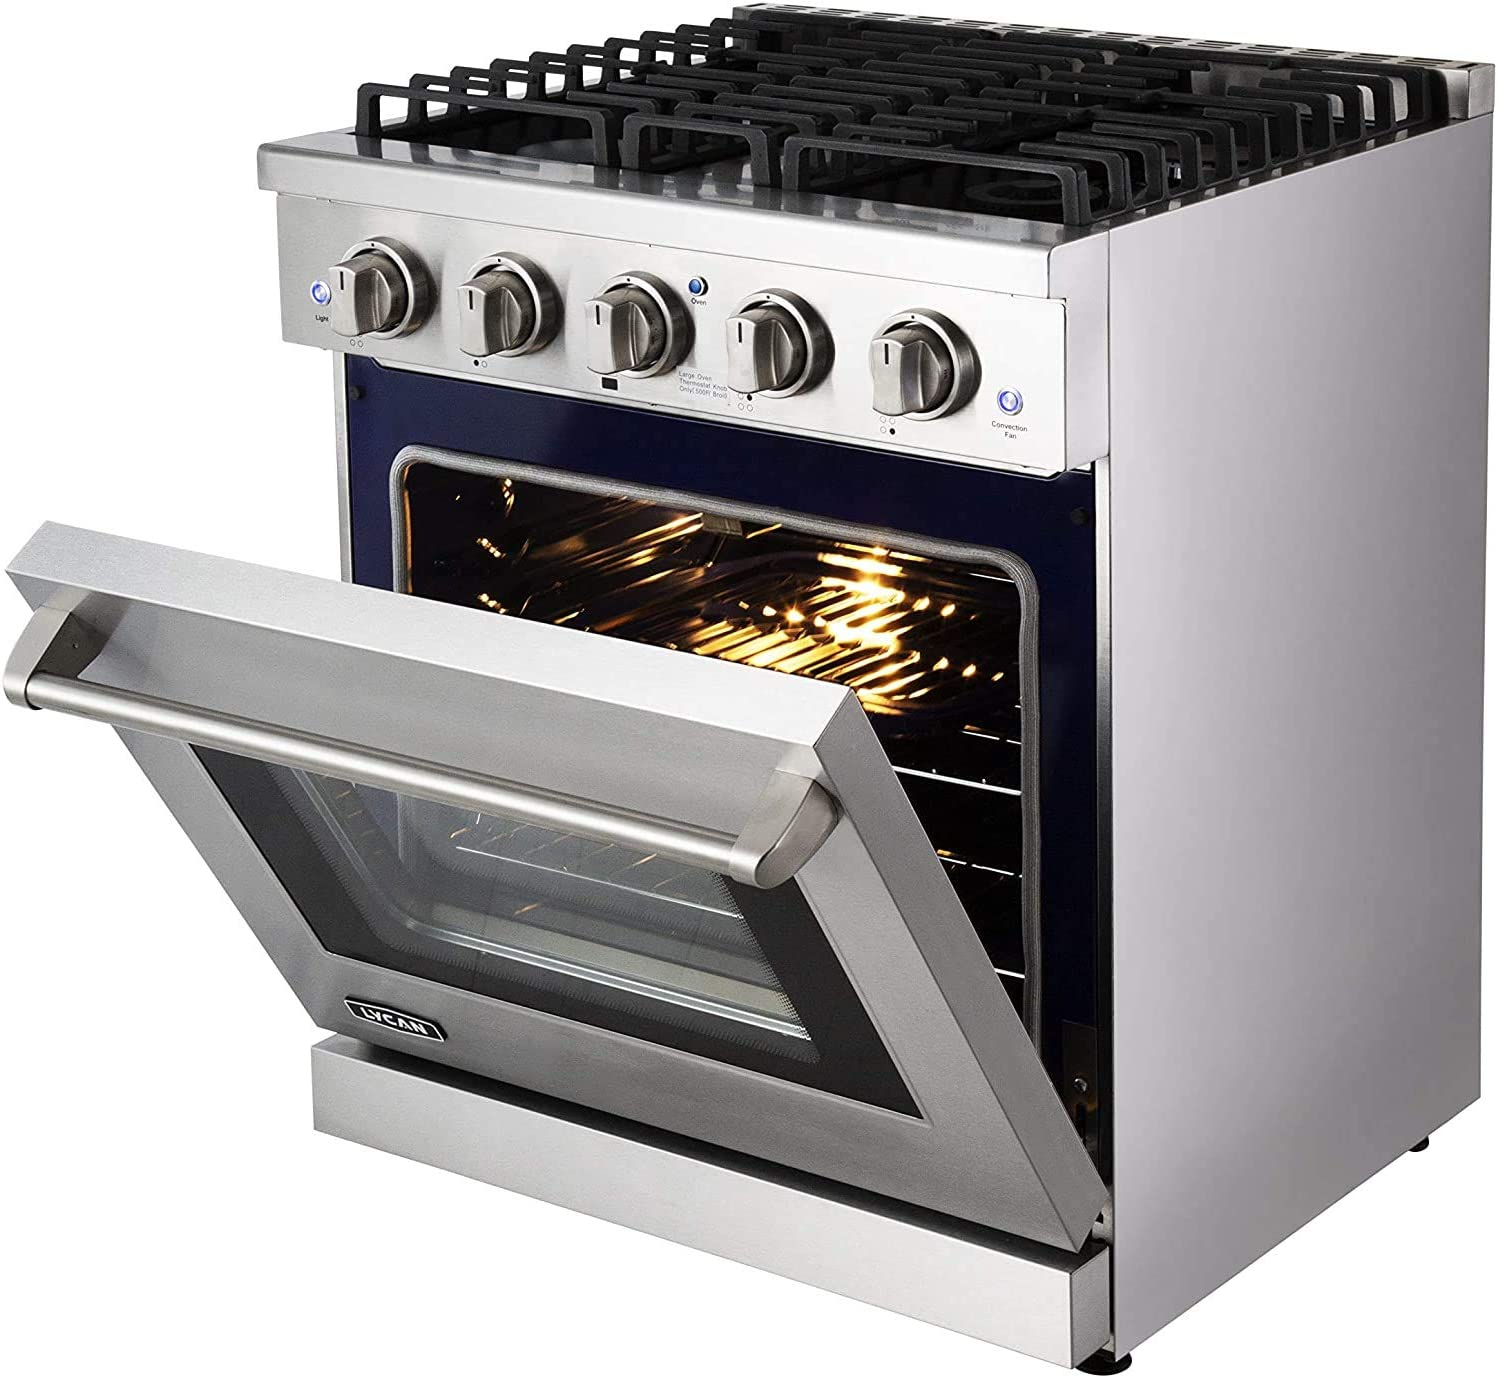 Kitchen Gas Adjustable Rack-Premium Freestanding Oven Range LYCAN 99AKG3019 Professional Cook Top-Heavy Duty Stainless Steel Stove with 4 Burners-4.55 cu.ft